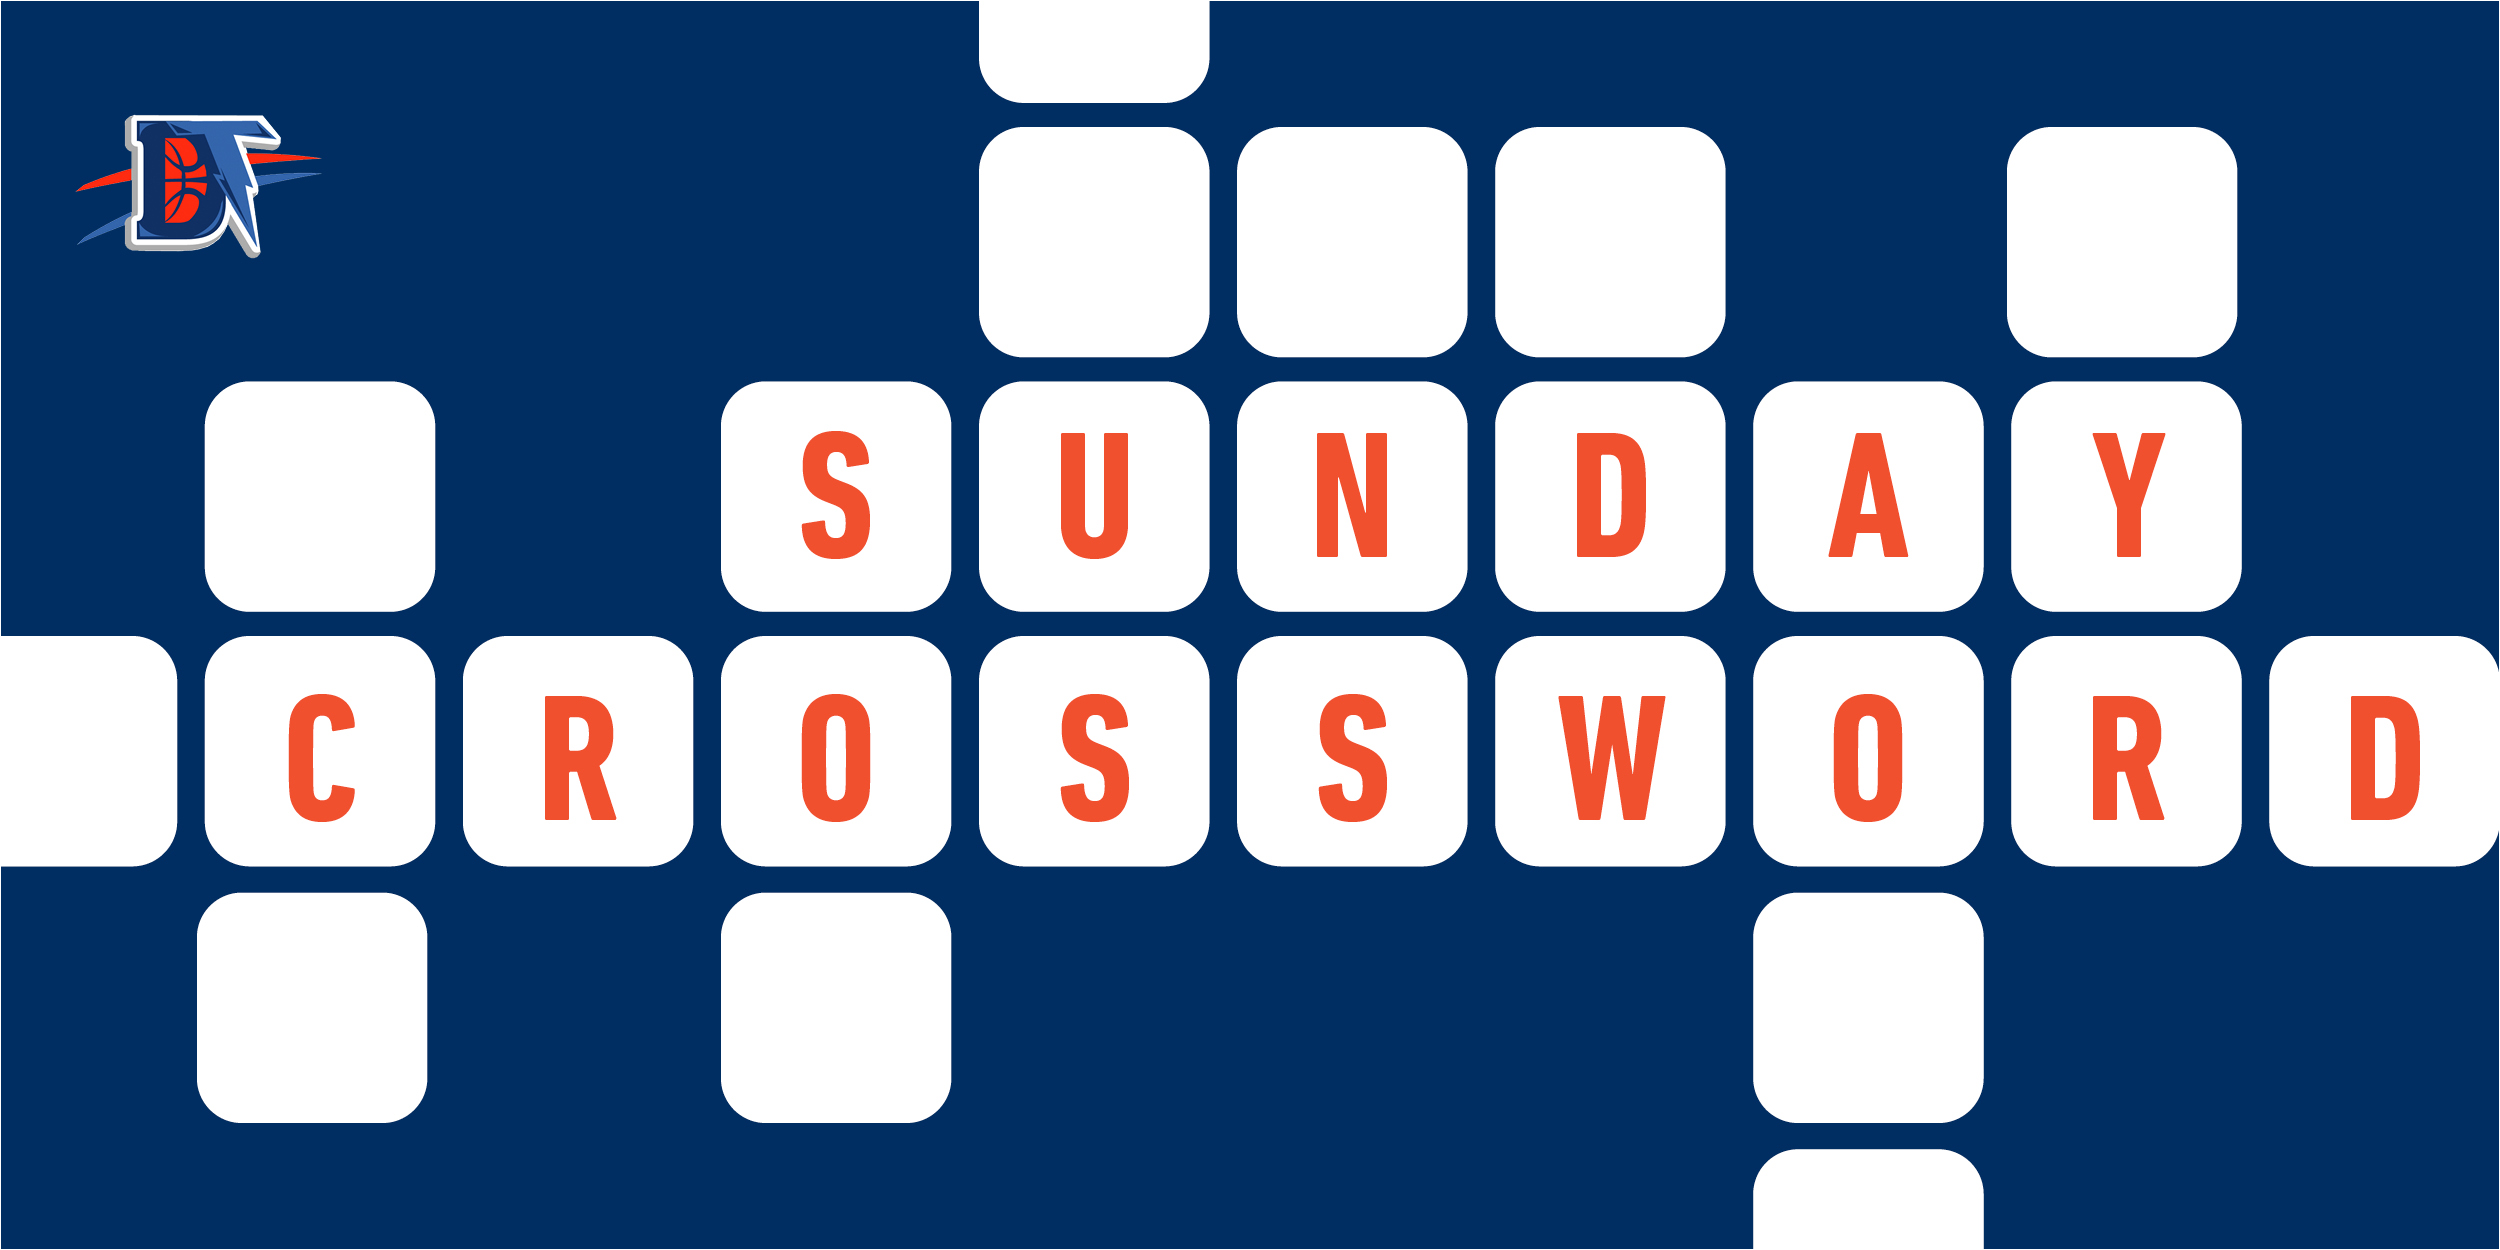 Sunday Crossword: Sunday Stew – June 28, 2020